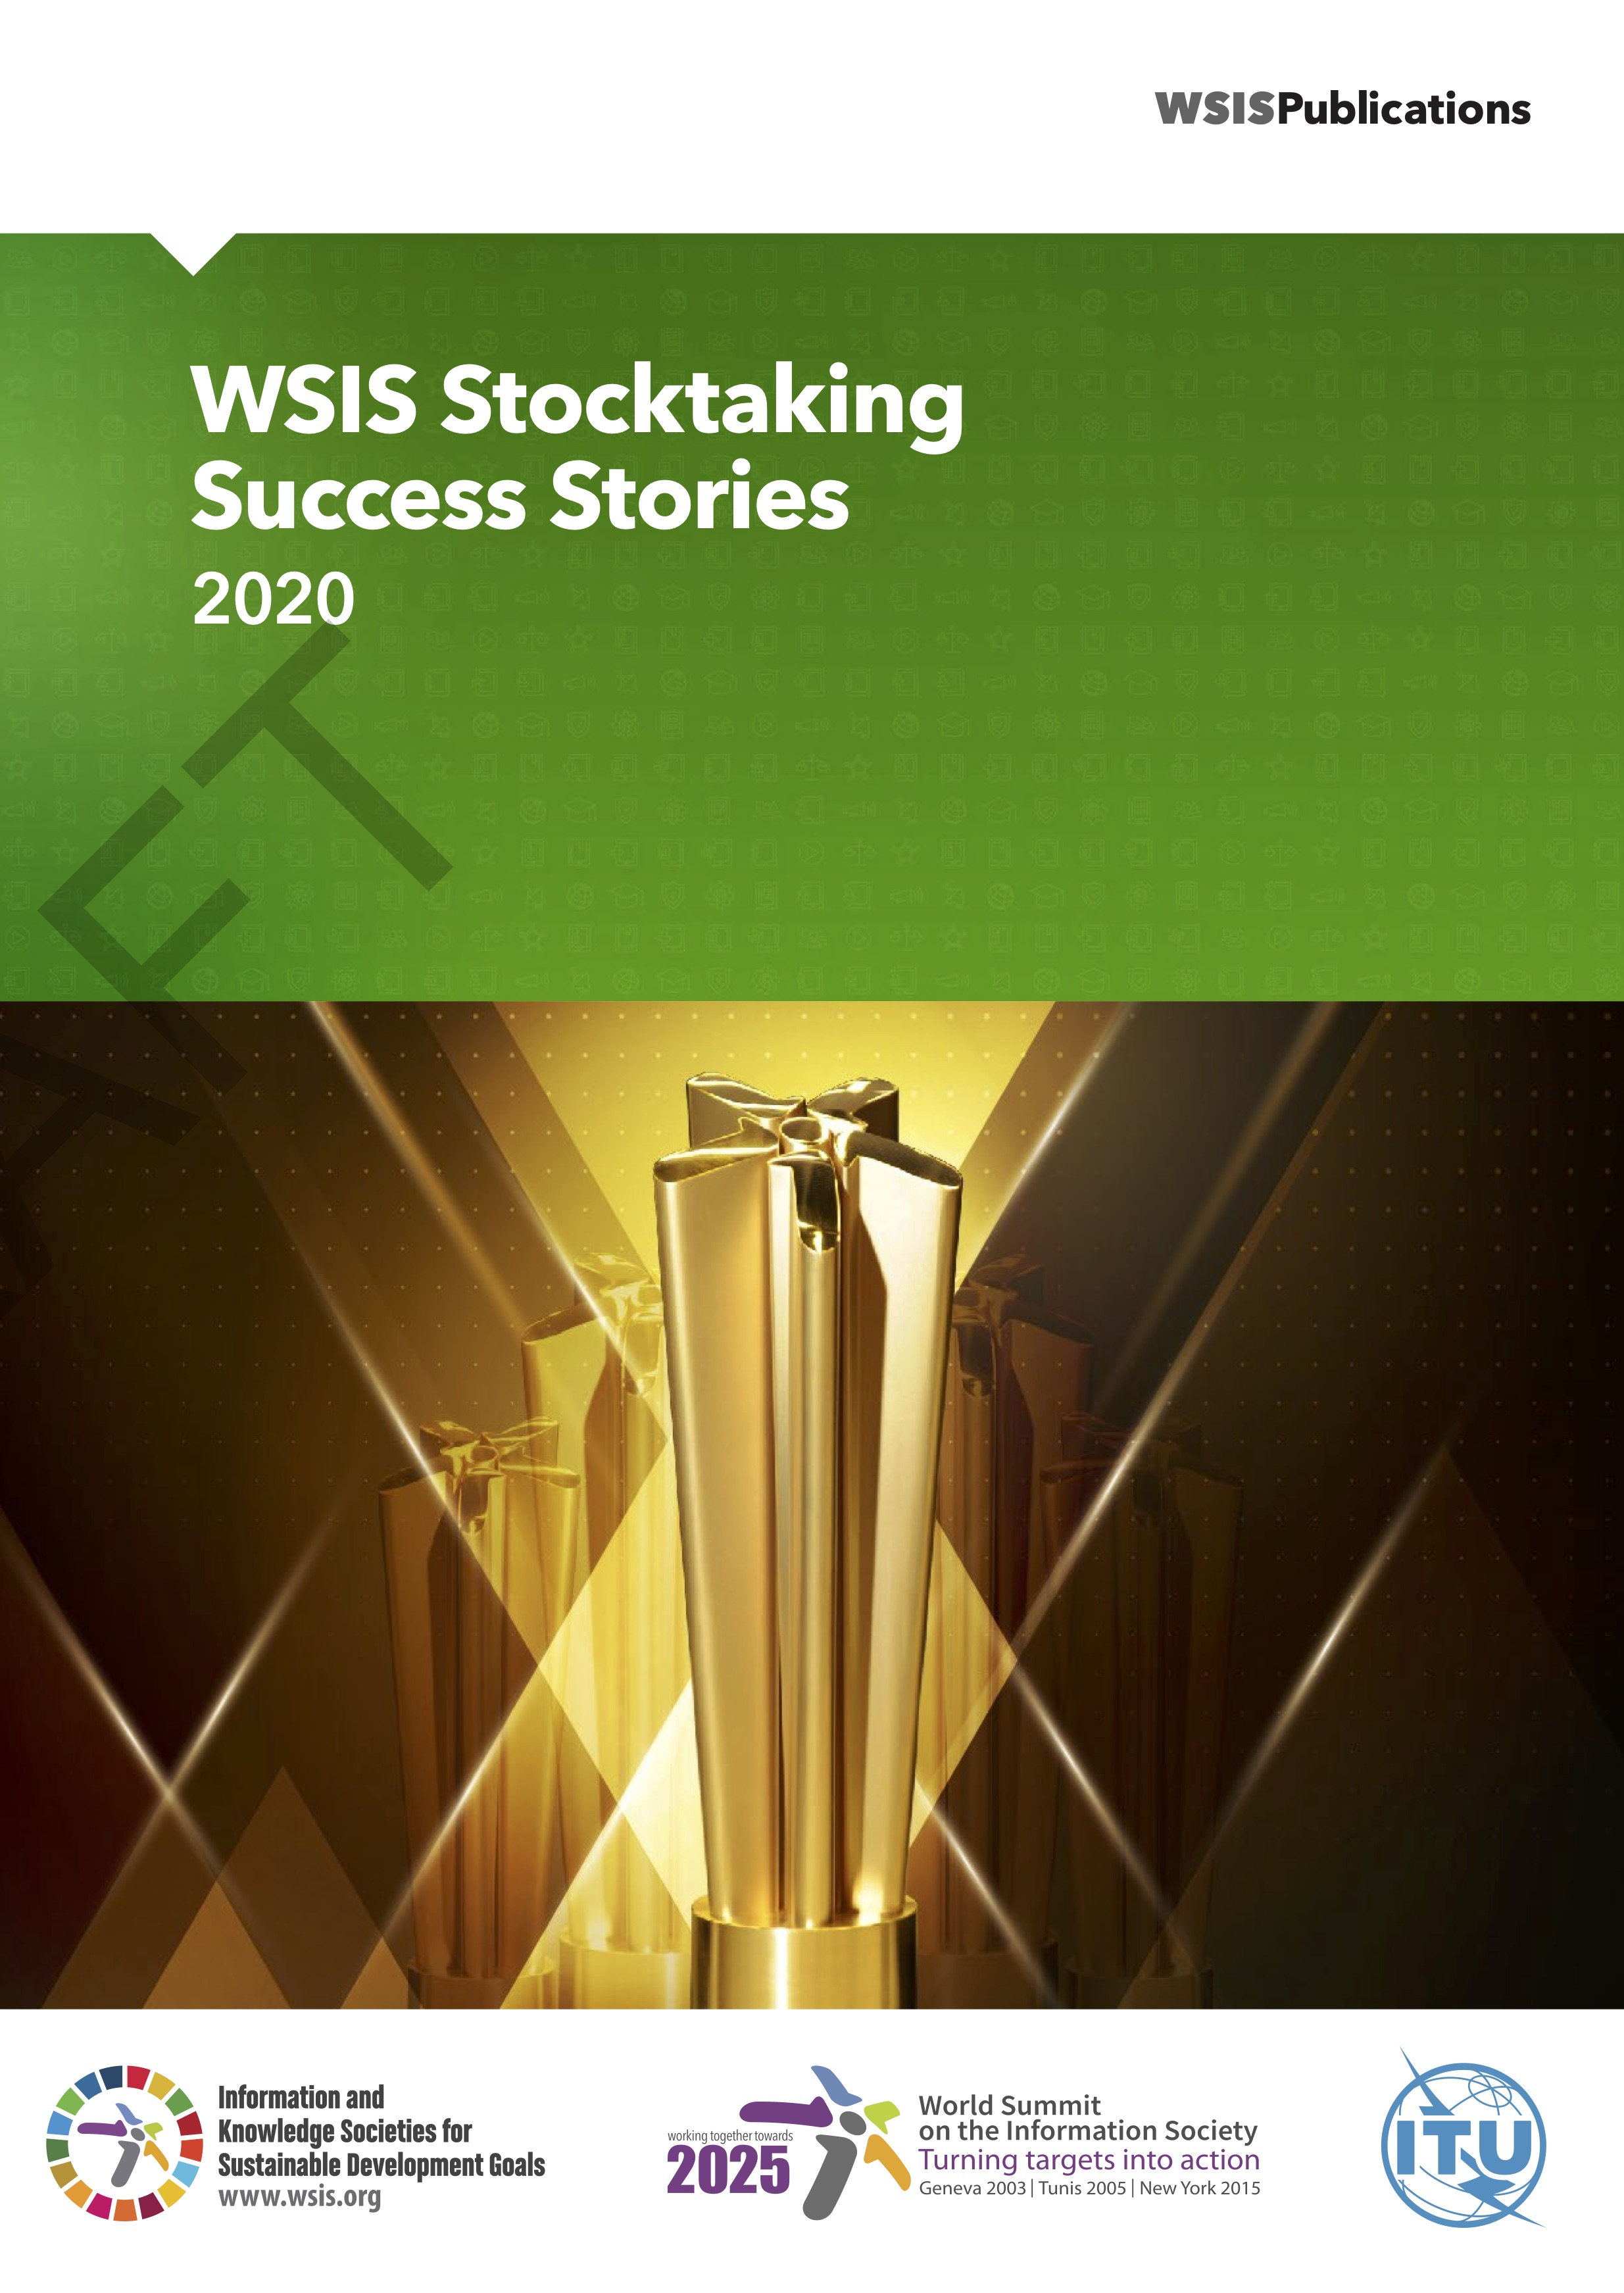 WSIS Stocktaking: Success Stories 2020